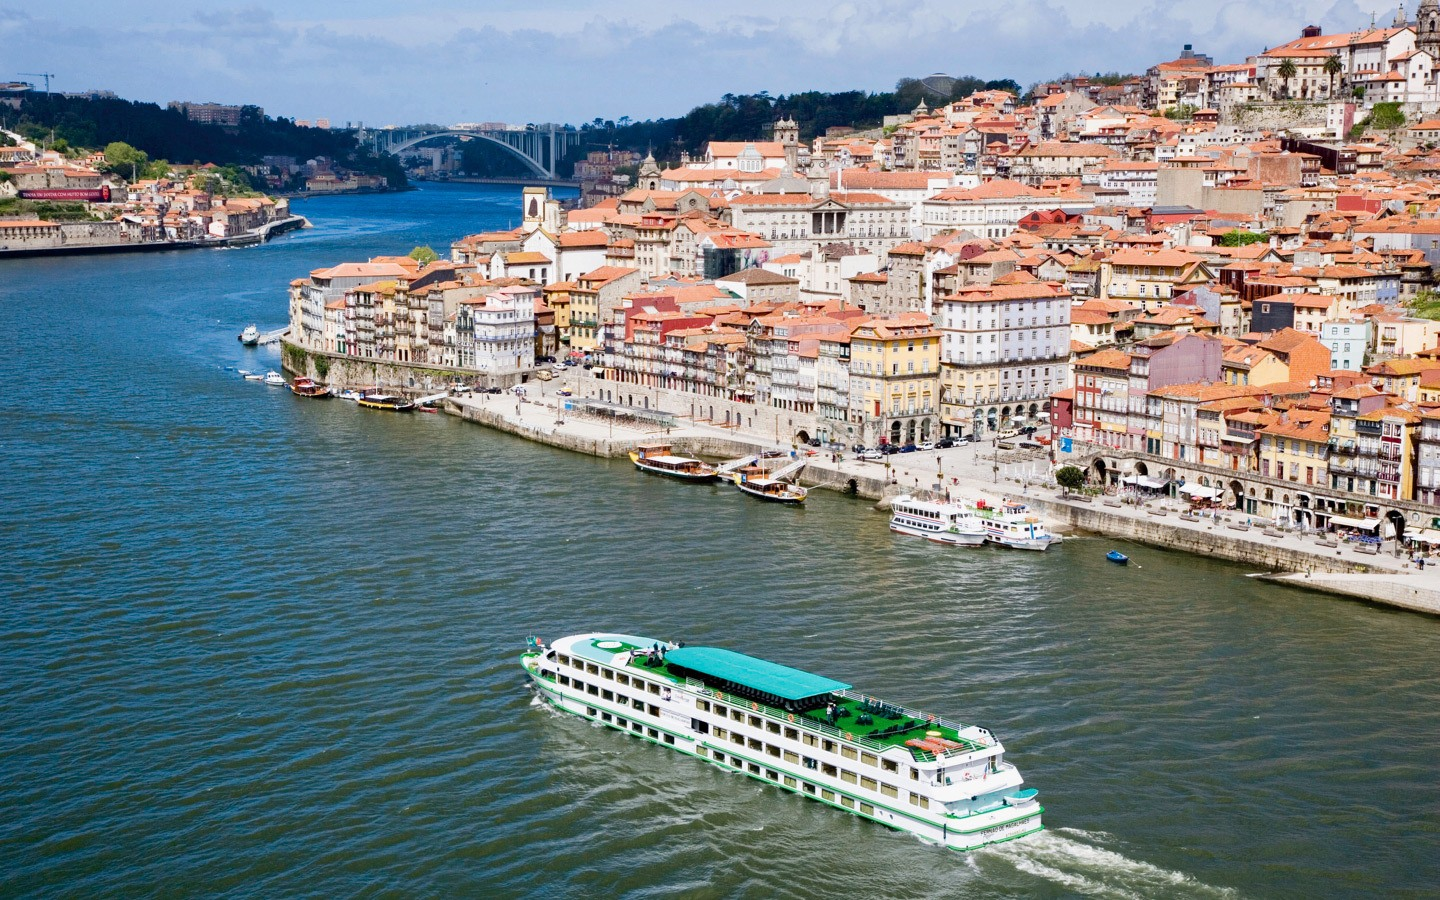 A river cruise on the Duoro, Porto